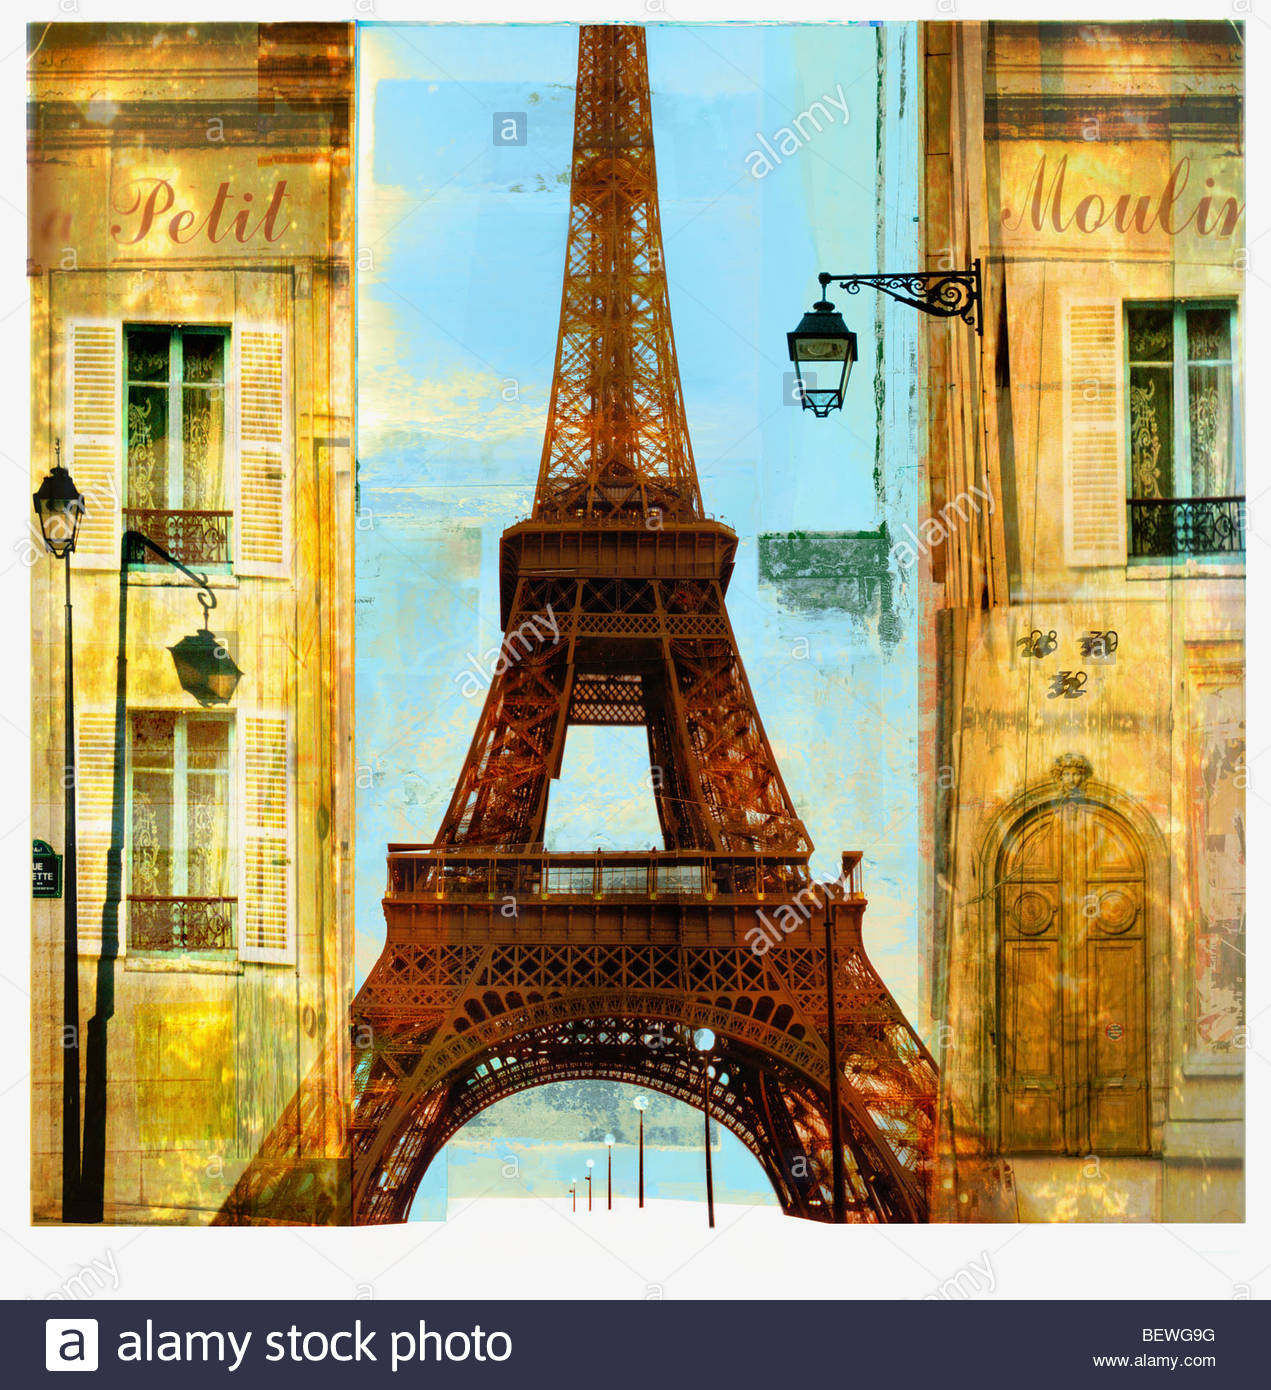 Apartments and Eiffel Tower - Stock Image